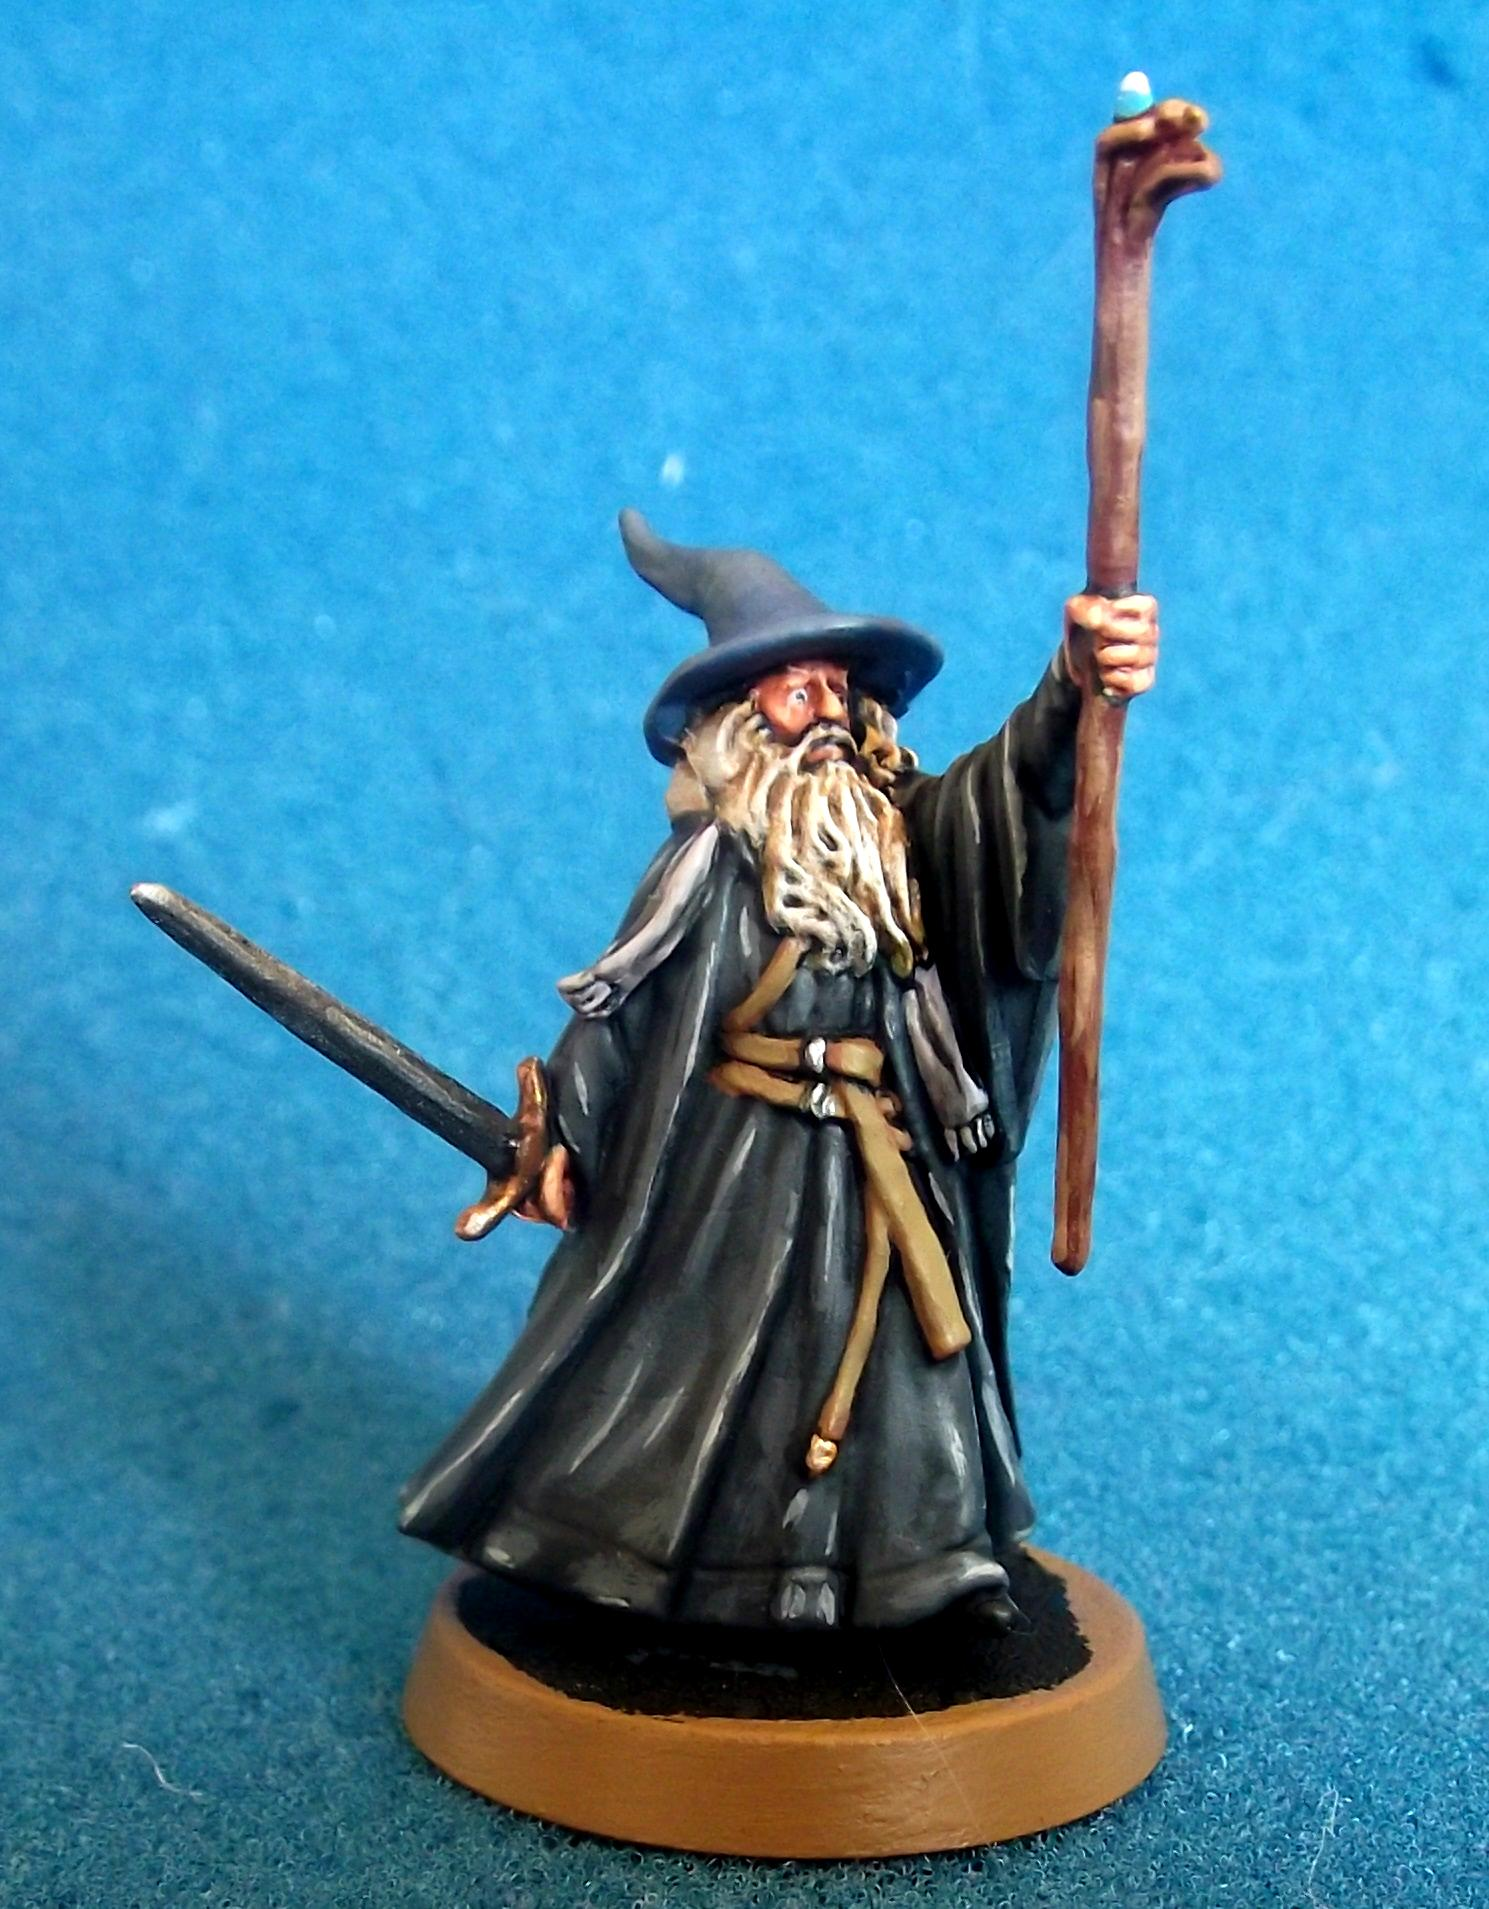 Fellowship, Gandalf The Grey, Lord Of The Rings, Wizard